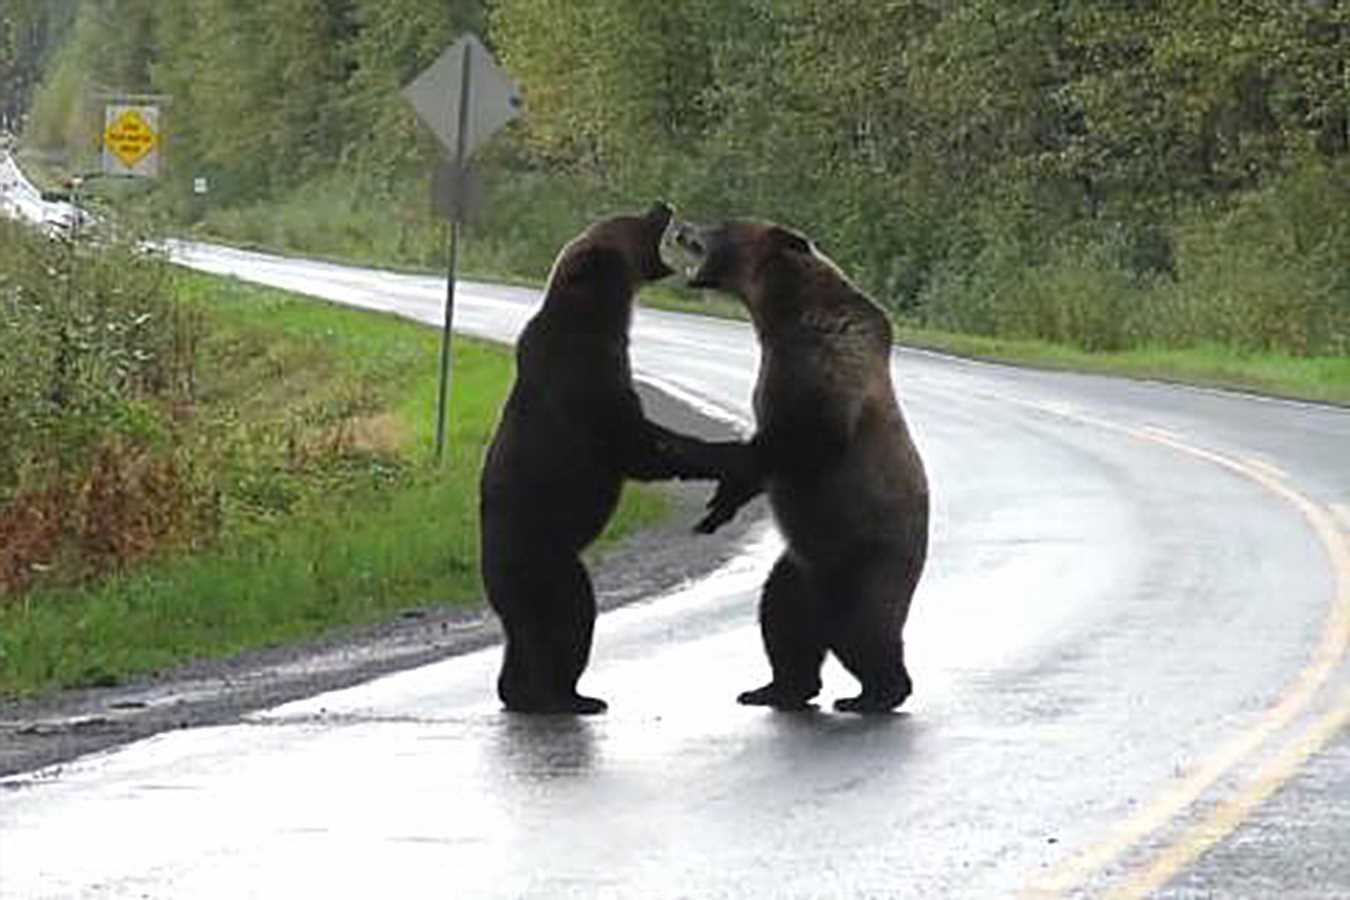 Two Bears Brawl in the Middle of a Highway as a Wolf Watches Quietly from a Distance